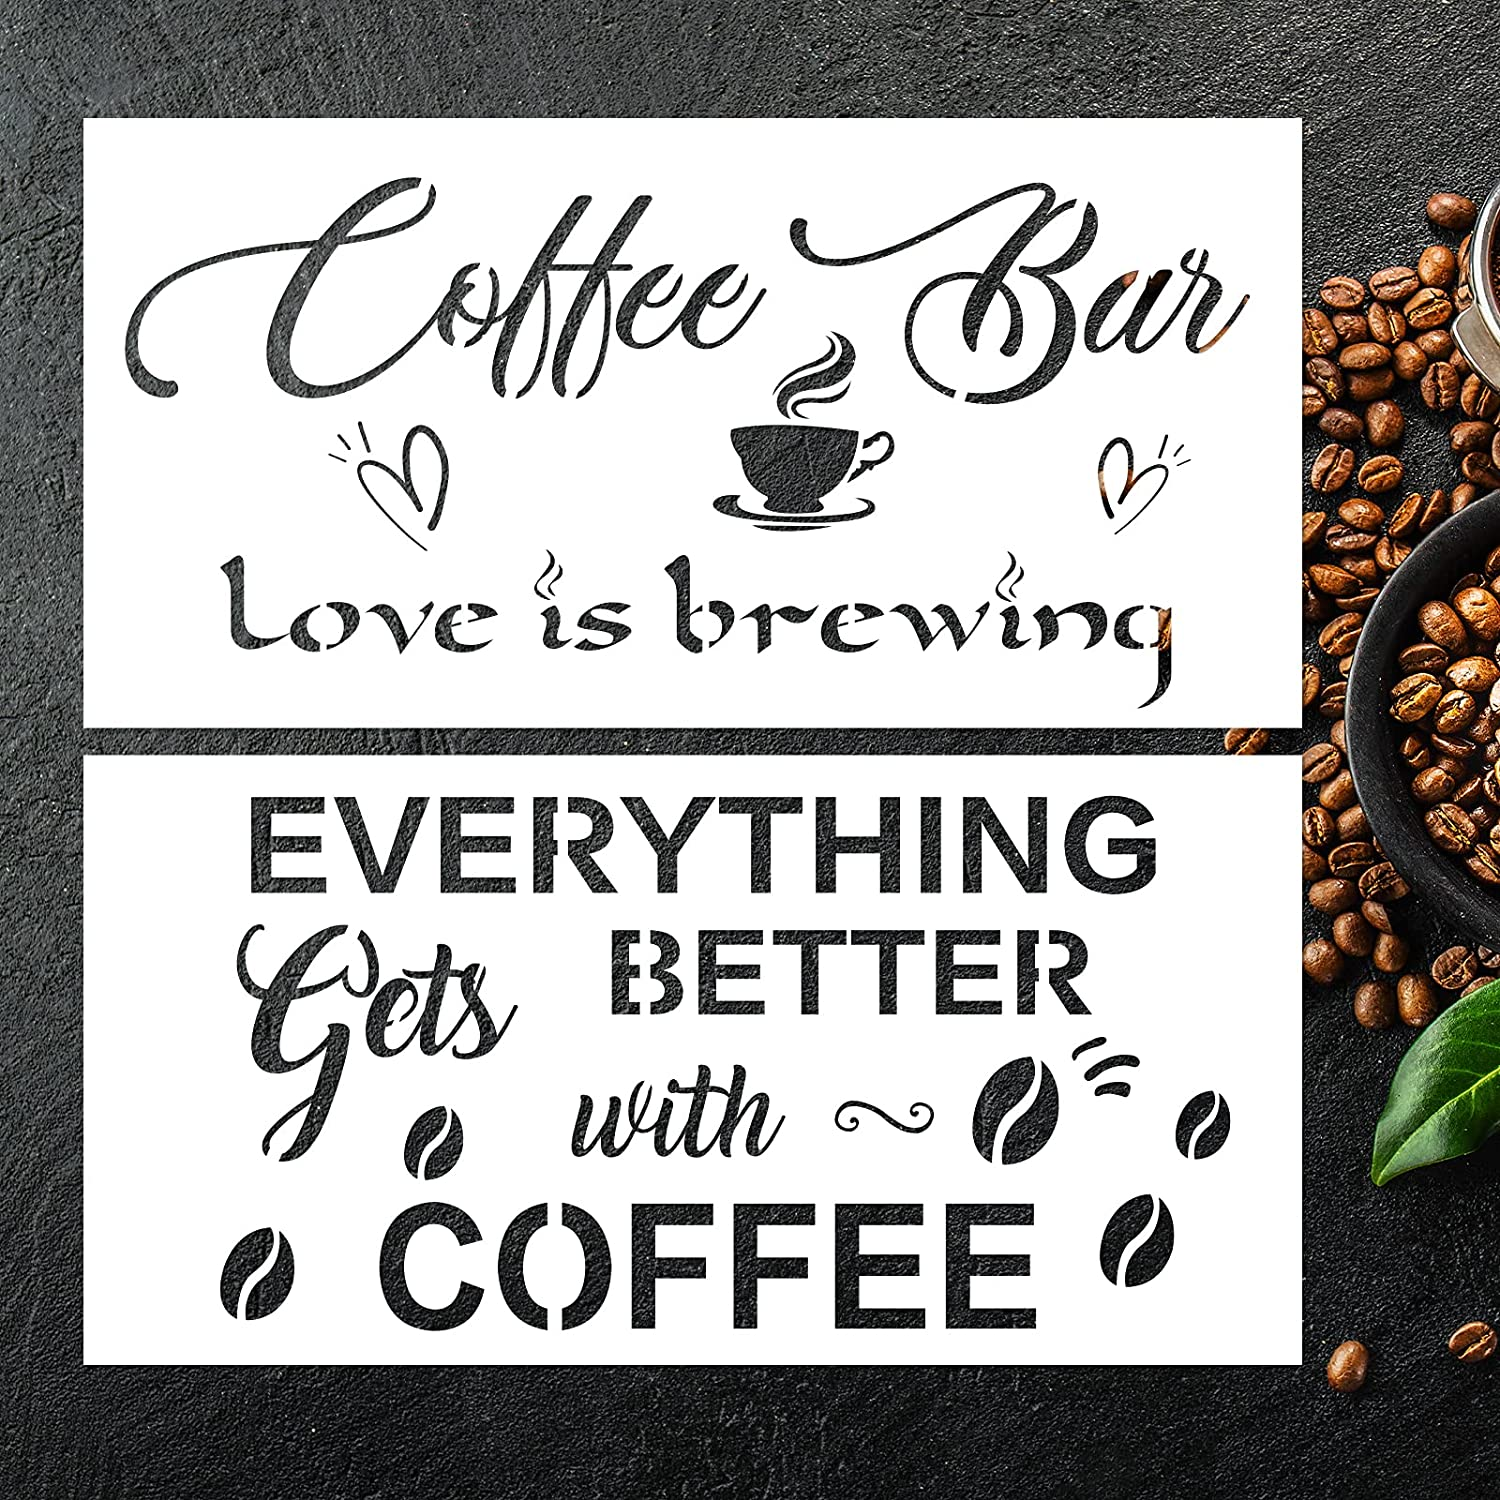 """Coffee Sign Stencils Kit for Coffee Bar- Rustic Farmhouse Inspirational Template 12""""X6"""" Reusable Drawing Stencil DIY Wall Furniture Canvas Paper Fabric Floor Tiles Decoration Set of 2"""